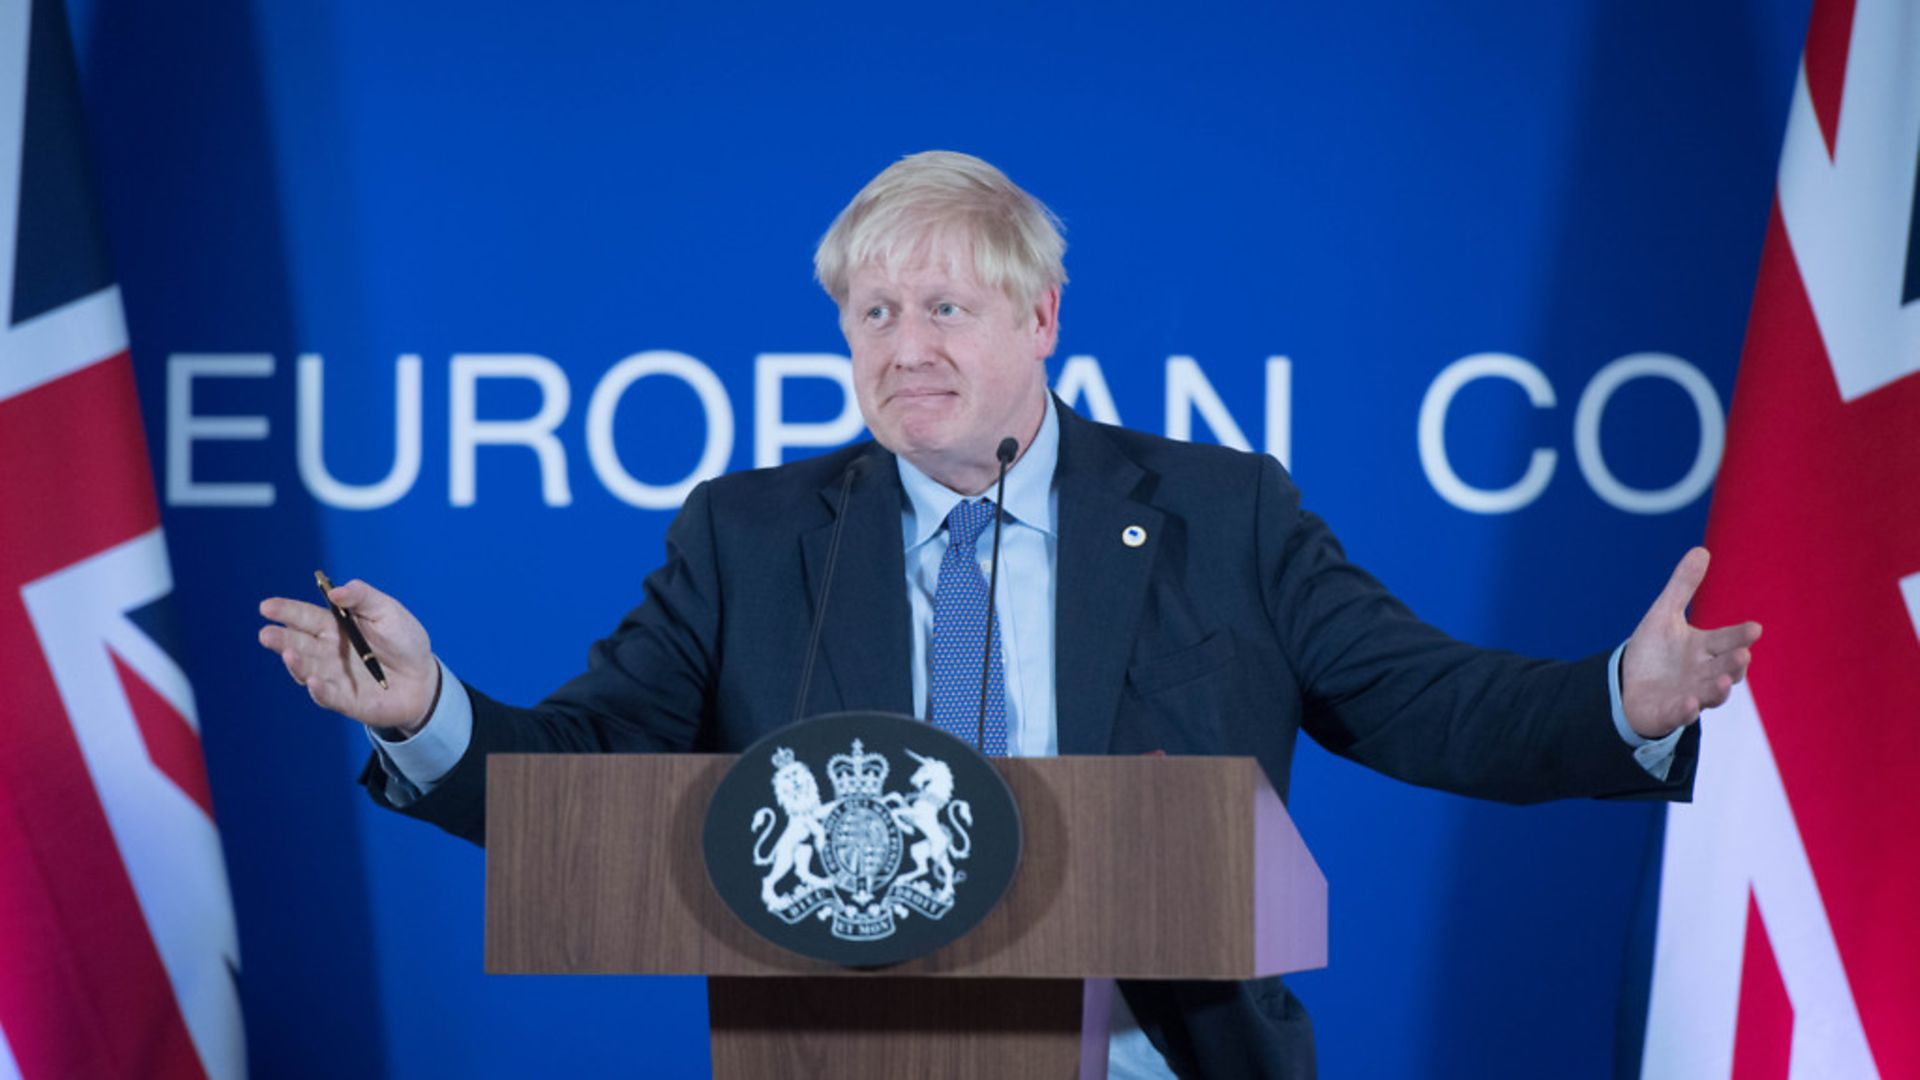 Boris Johnson speaking at a European Council summit at EU headquarters in Brussels. - Credit: PA